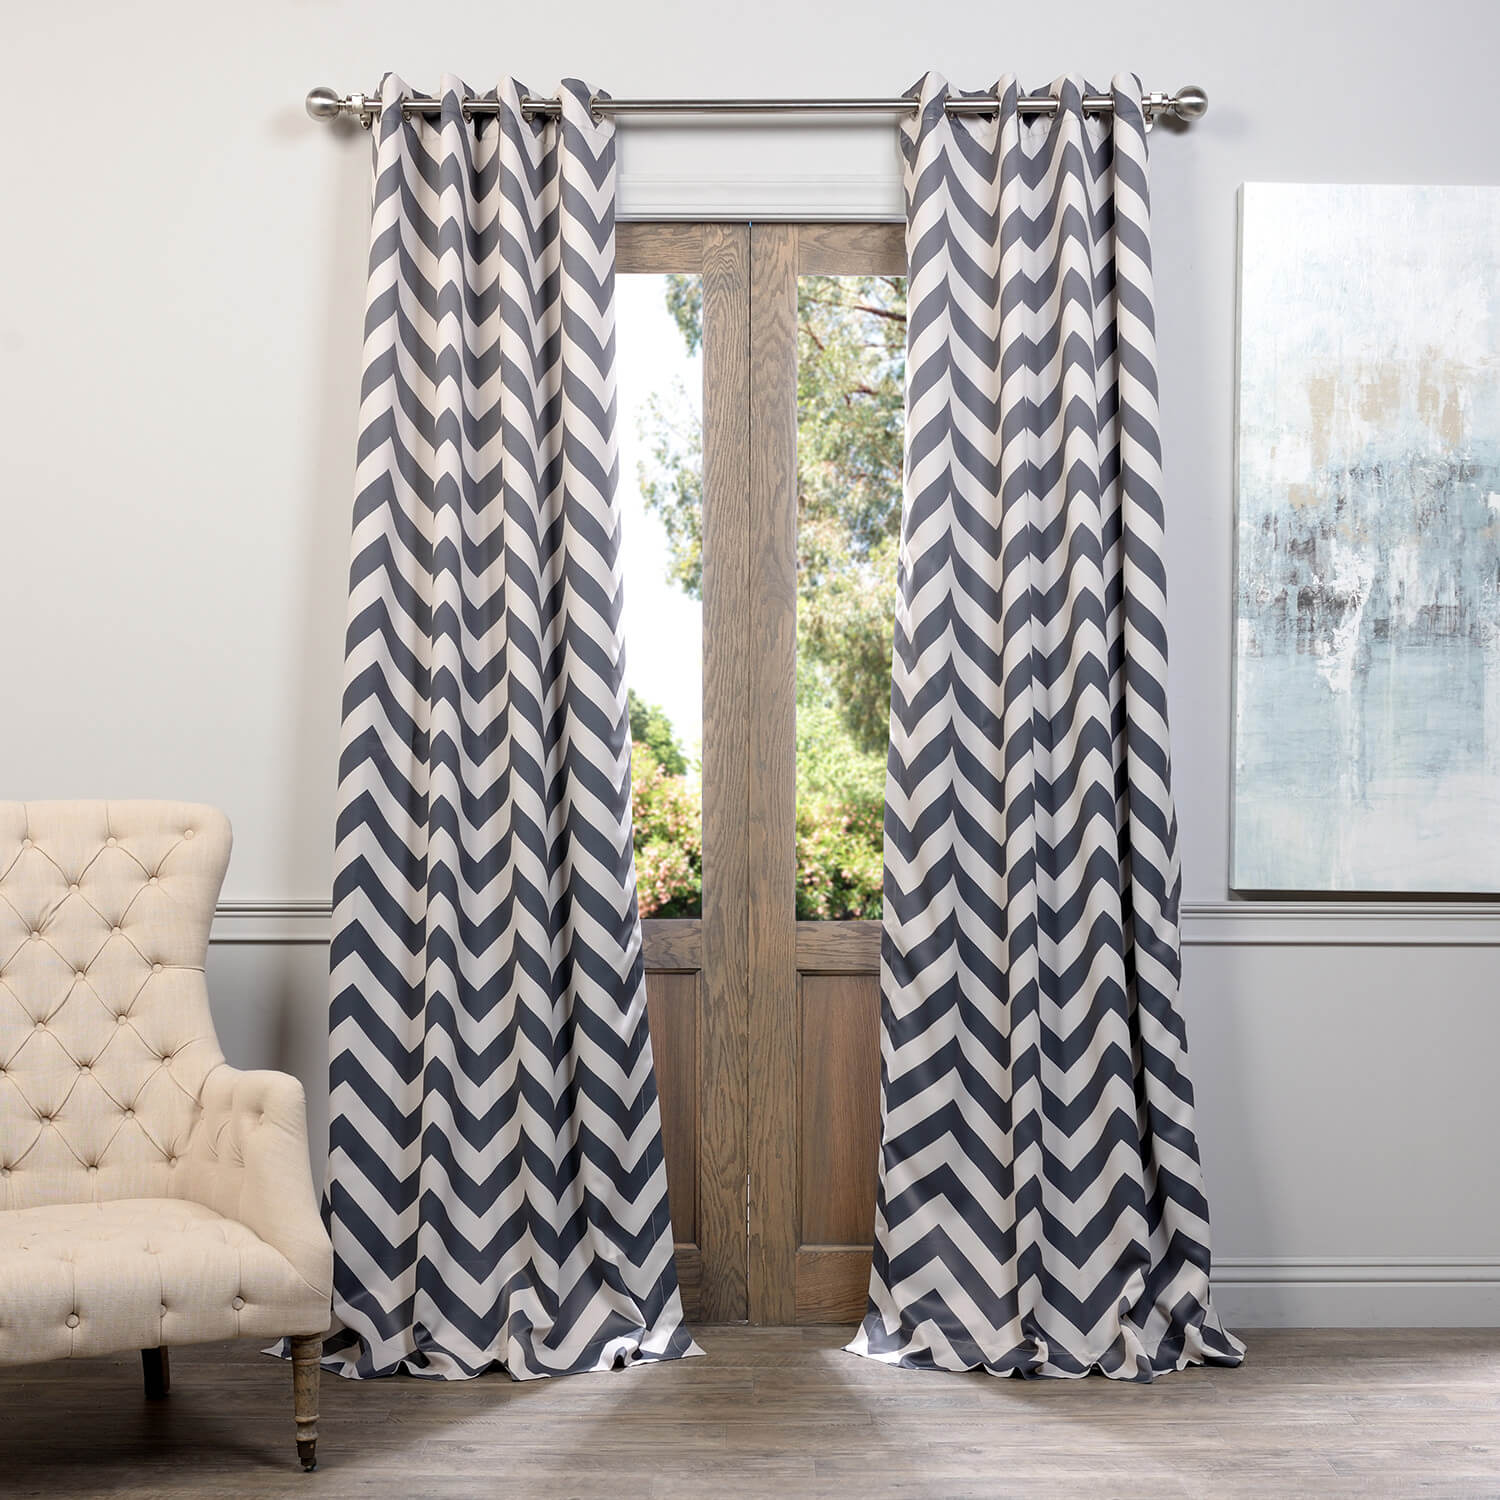 Fez Grey & Tan Grommet Blackout Room Darkening Curtain